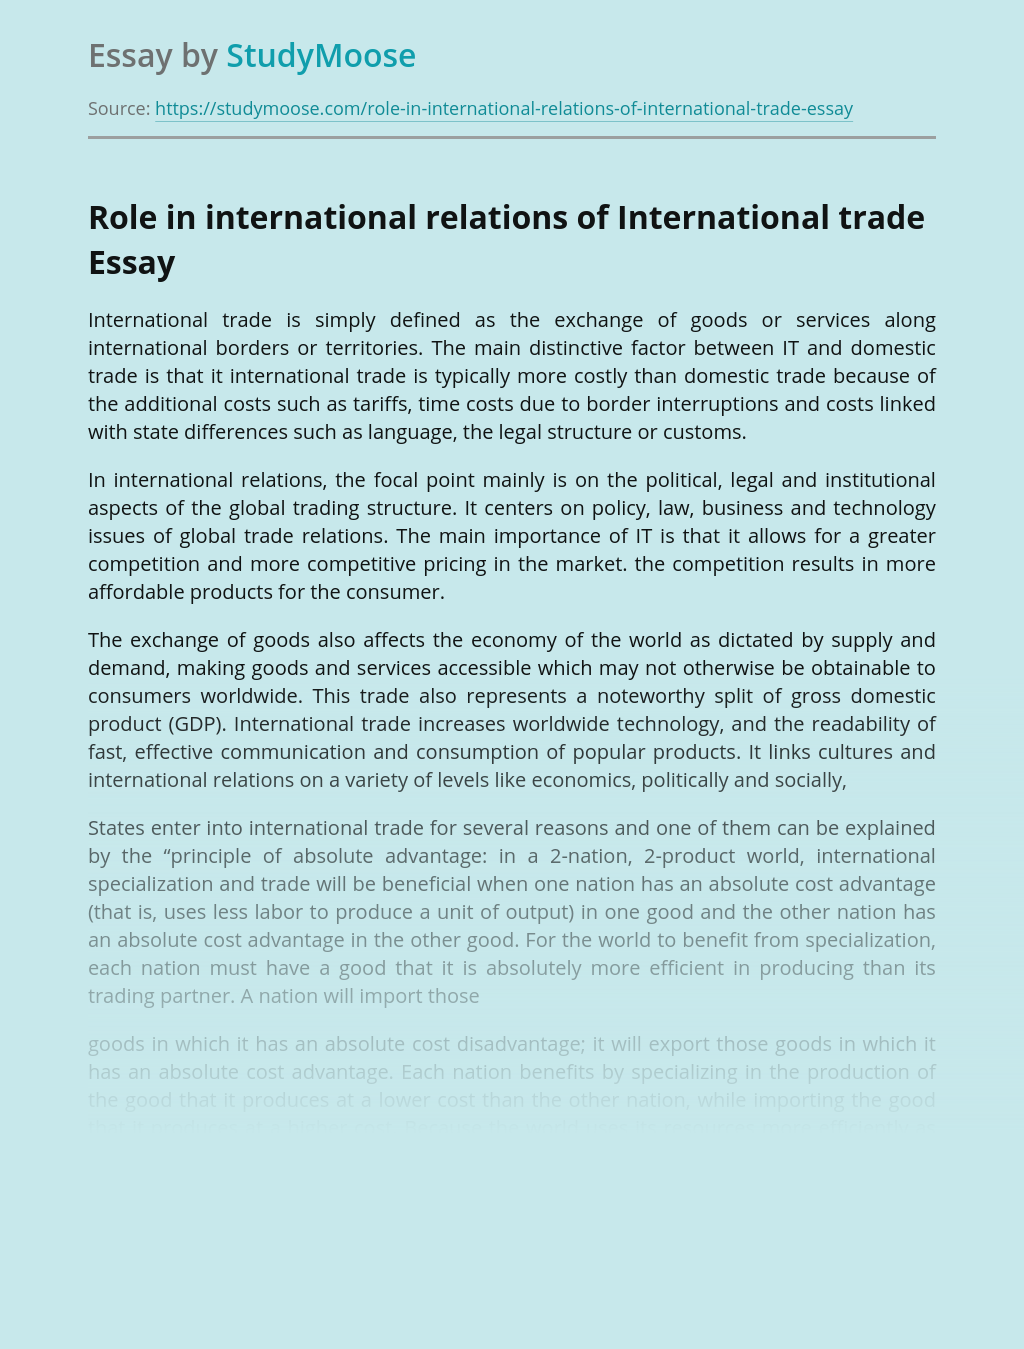 The Role of Trade in International Relations